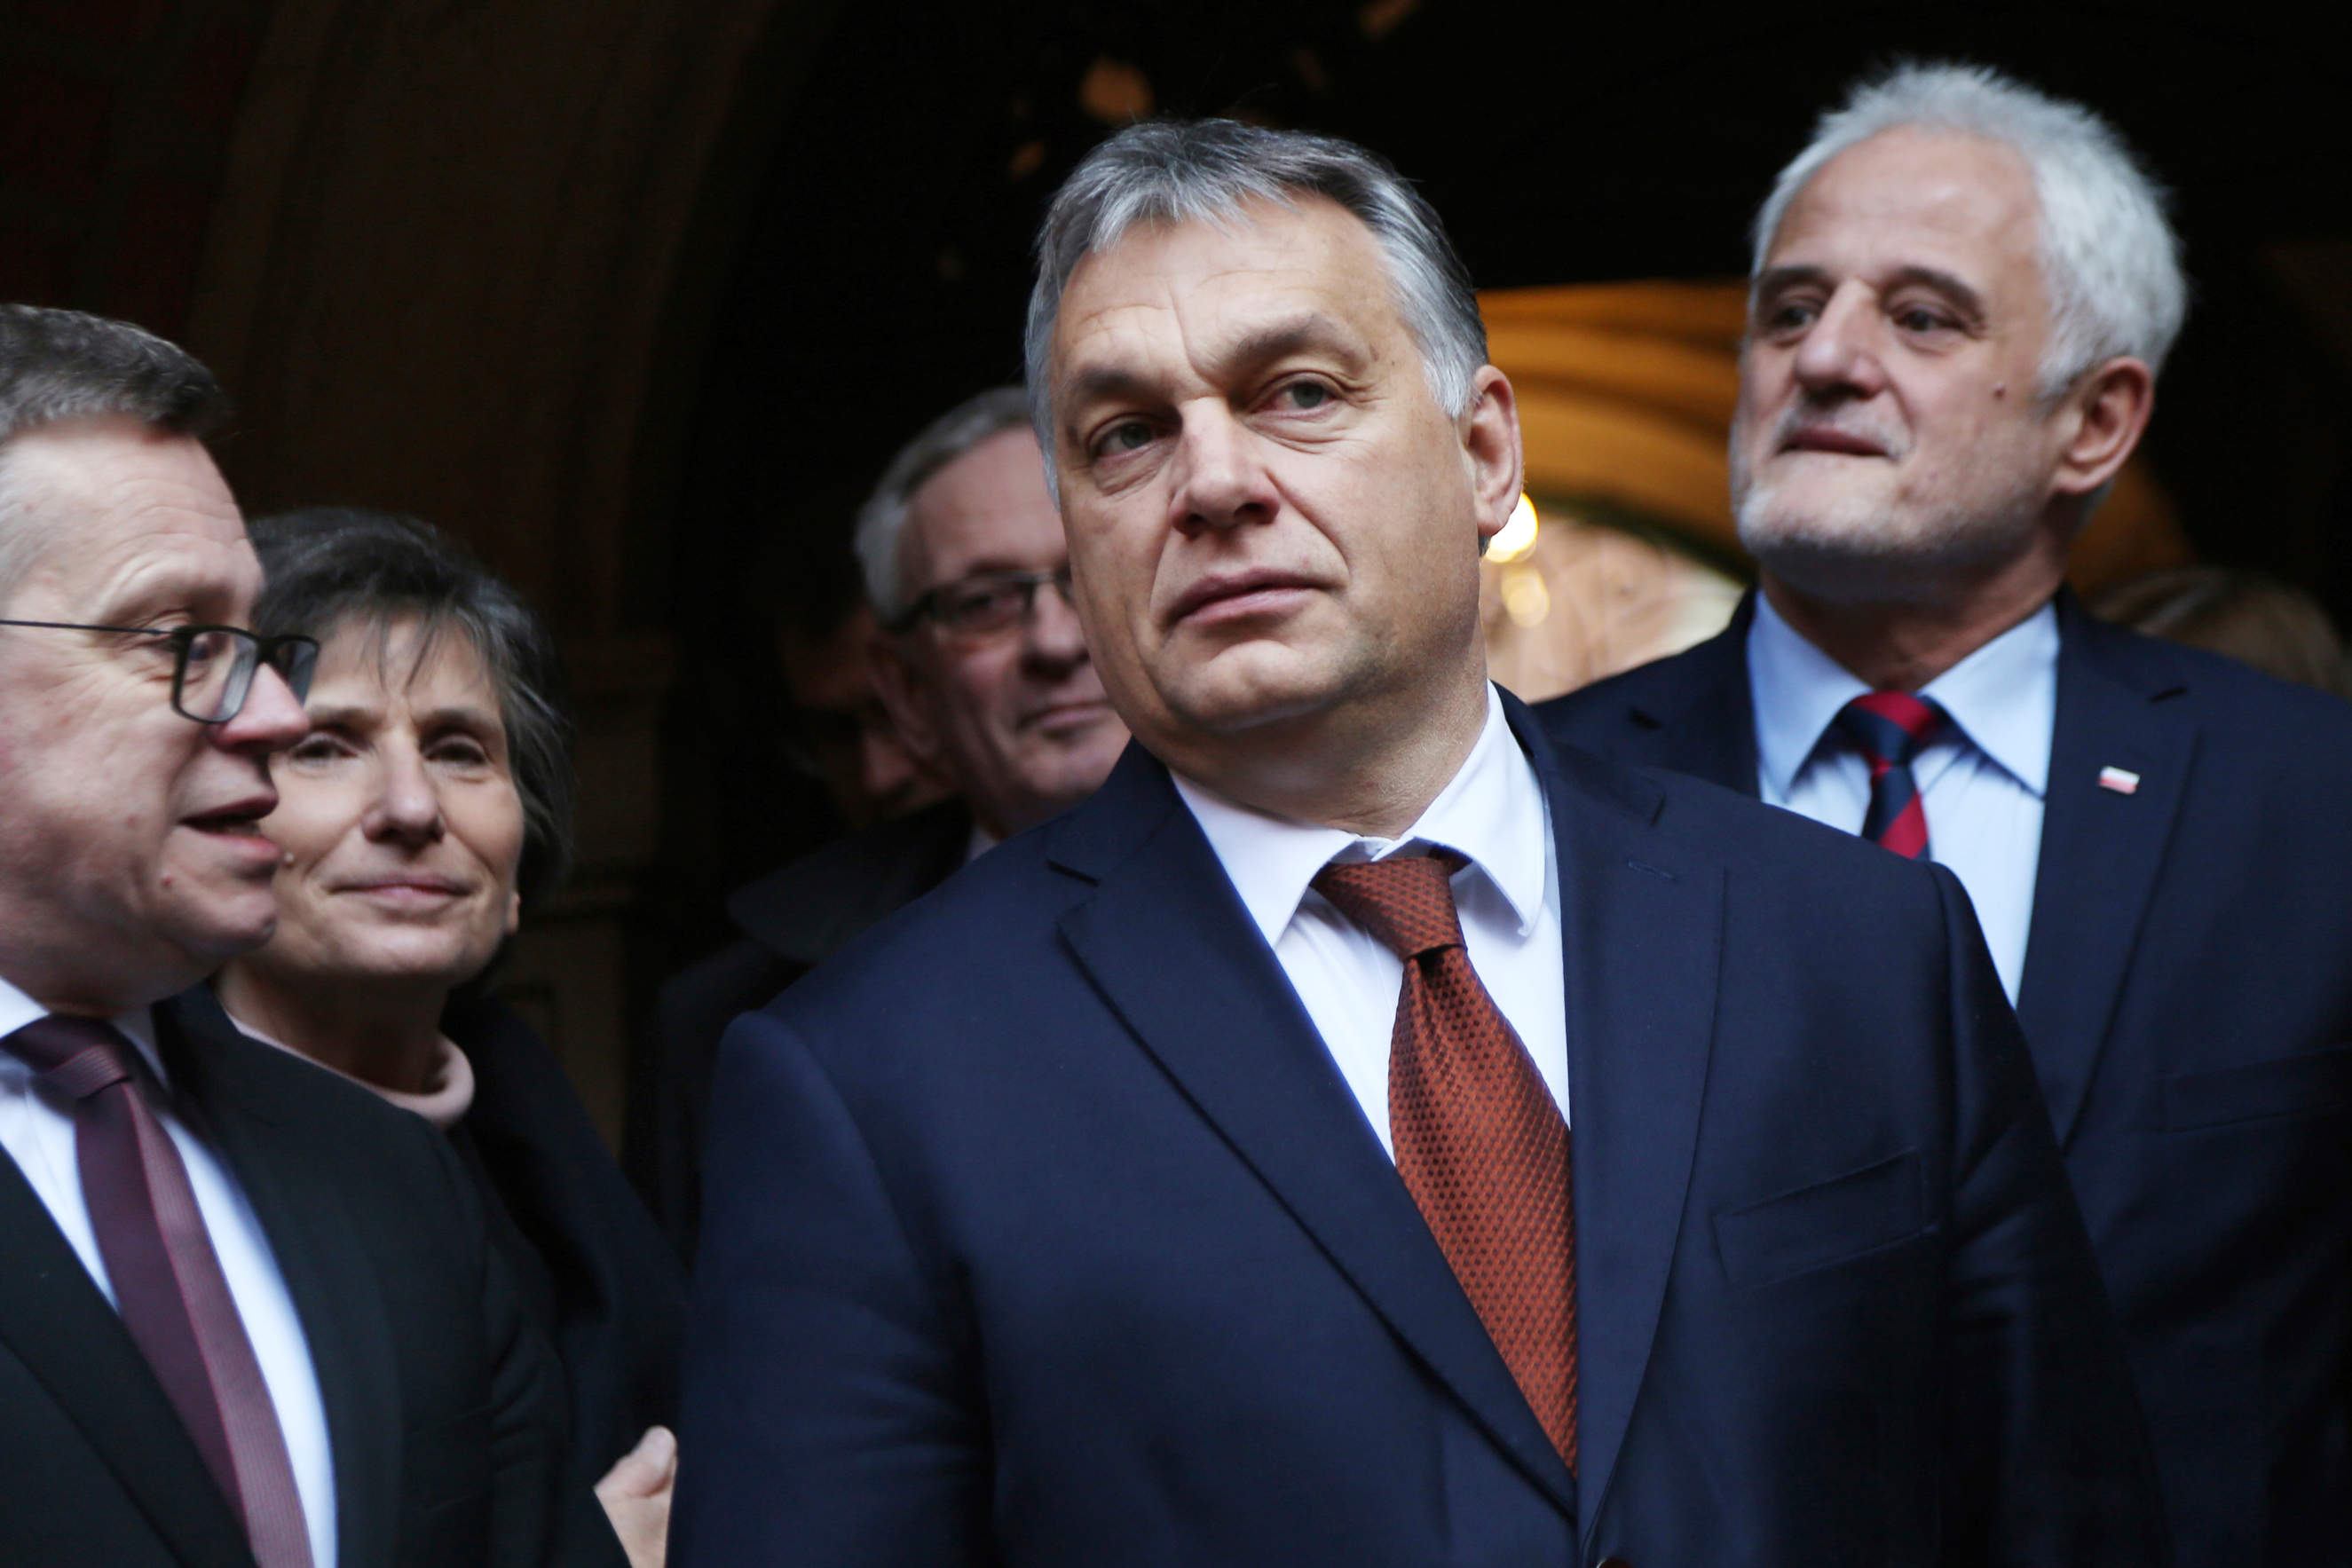 Prime Minister of Hungary, Viktor Orban, arrives at the scientific conference entitled  Europa Centralis - History of the Region Throughout the Ages  which was organized by the Jagiellonian University in Krakow, Poland to mark the one hundredth anniversary of the birth of the Polish professor of history Waclaw Felczak on Dec. 9, 2016.